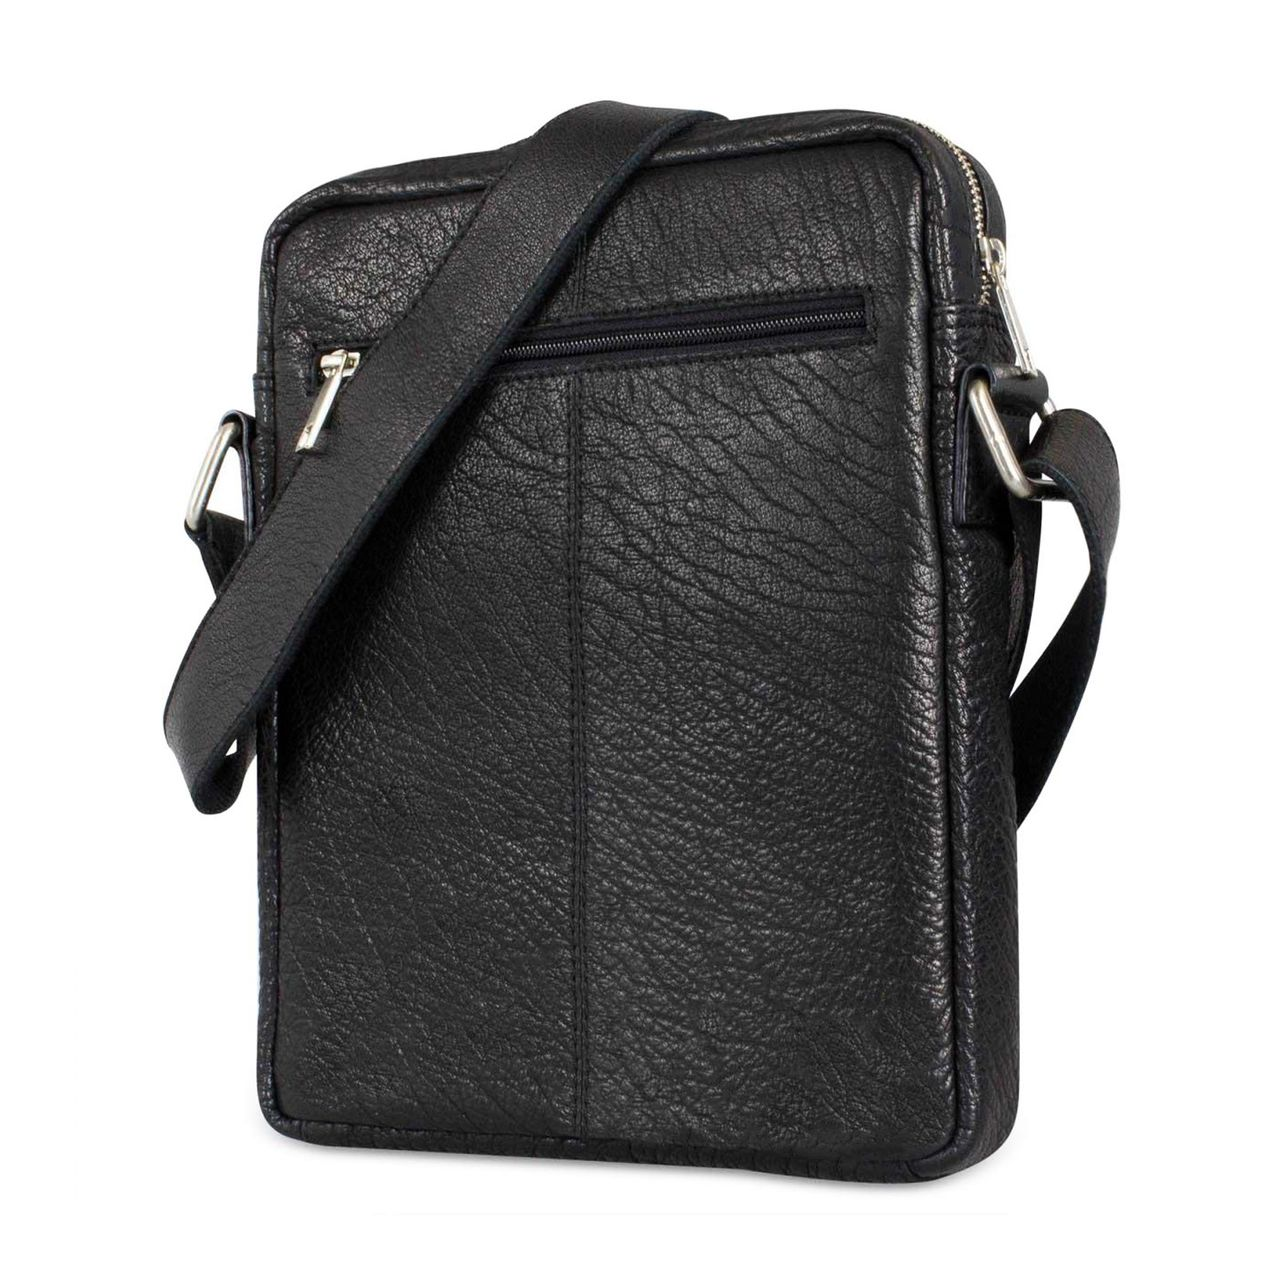 Messenger Bag Herrenhandtasche